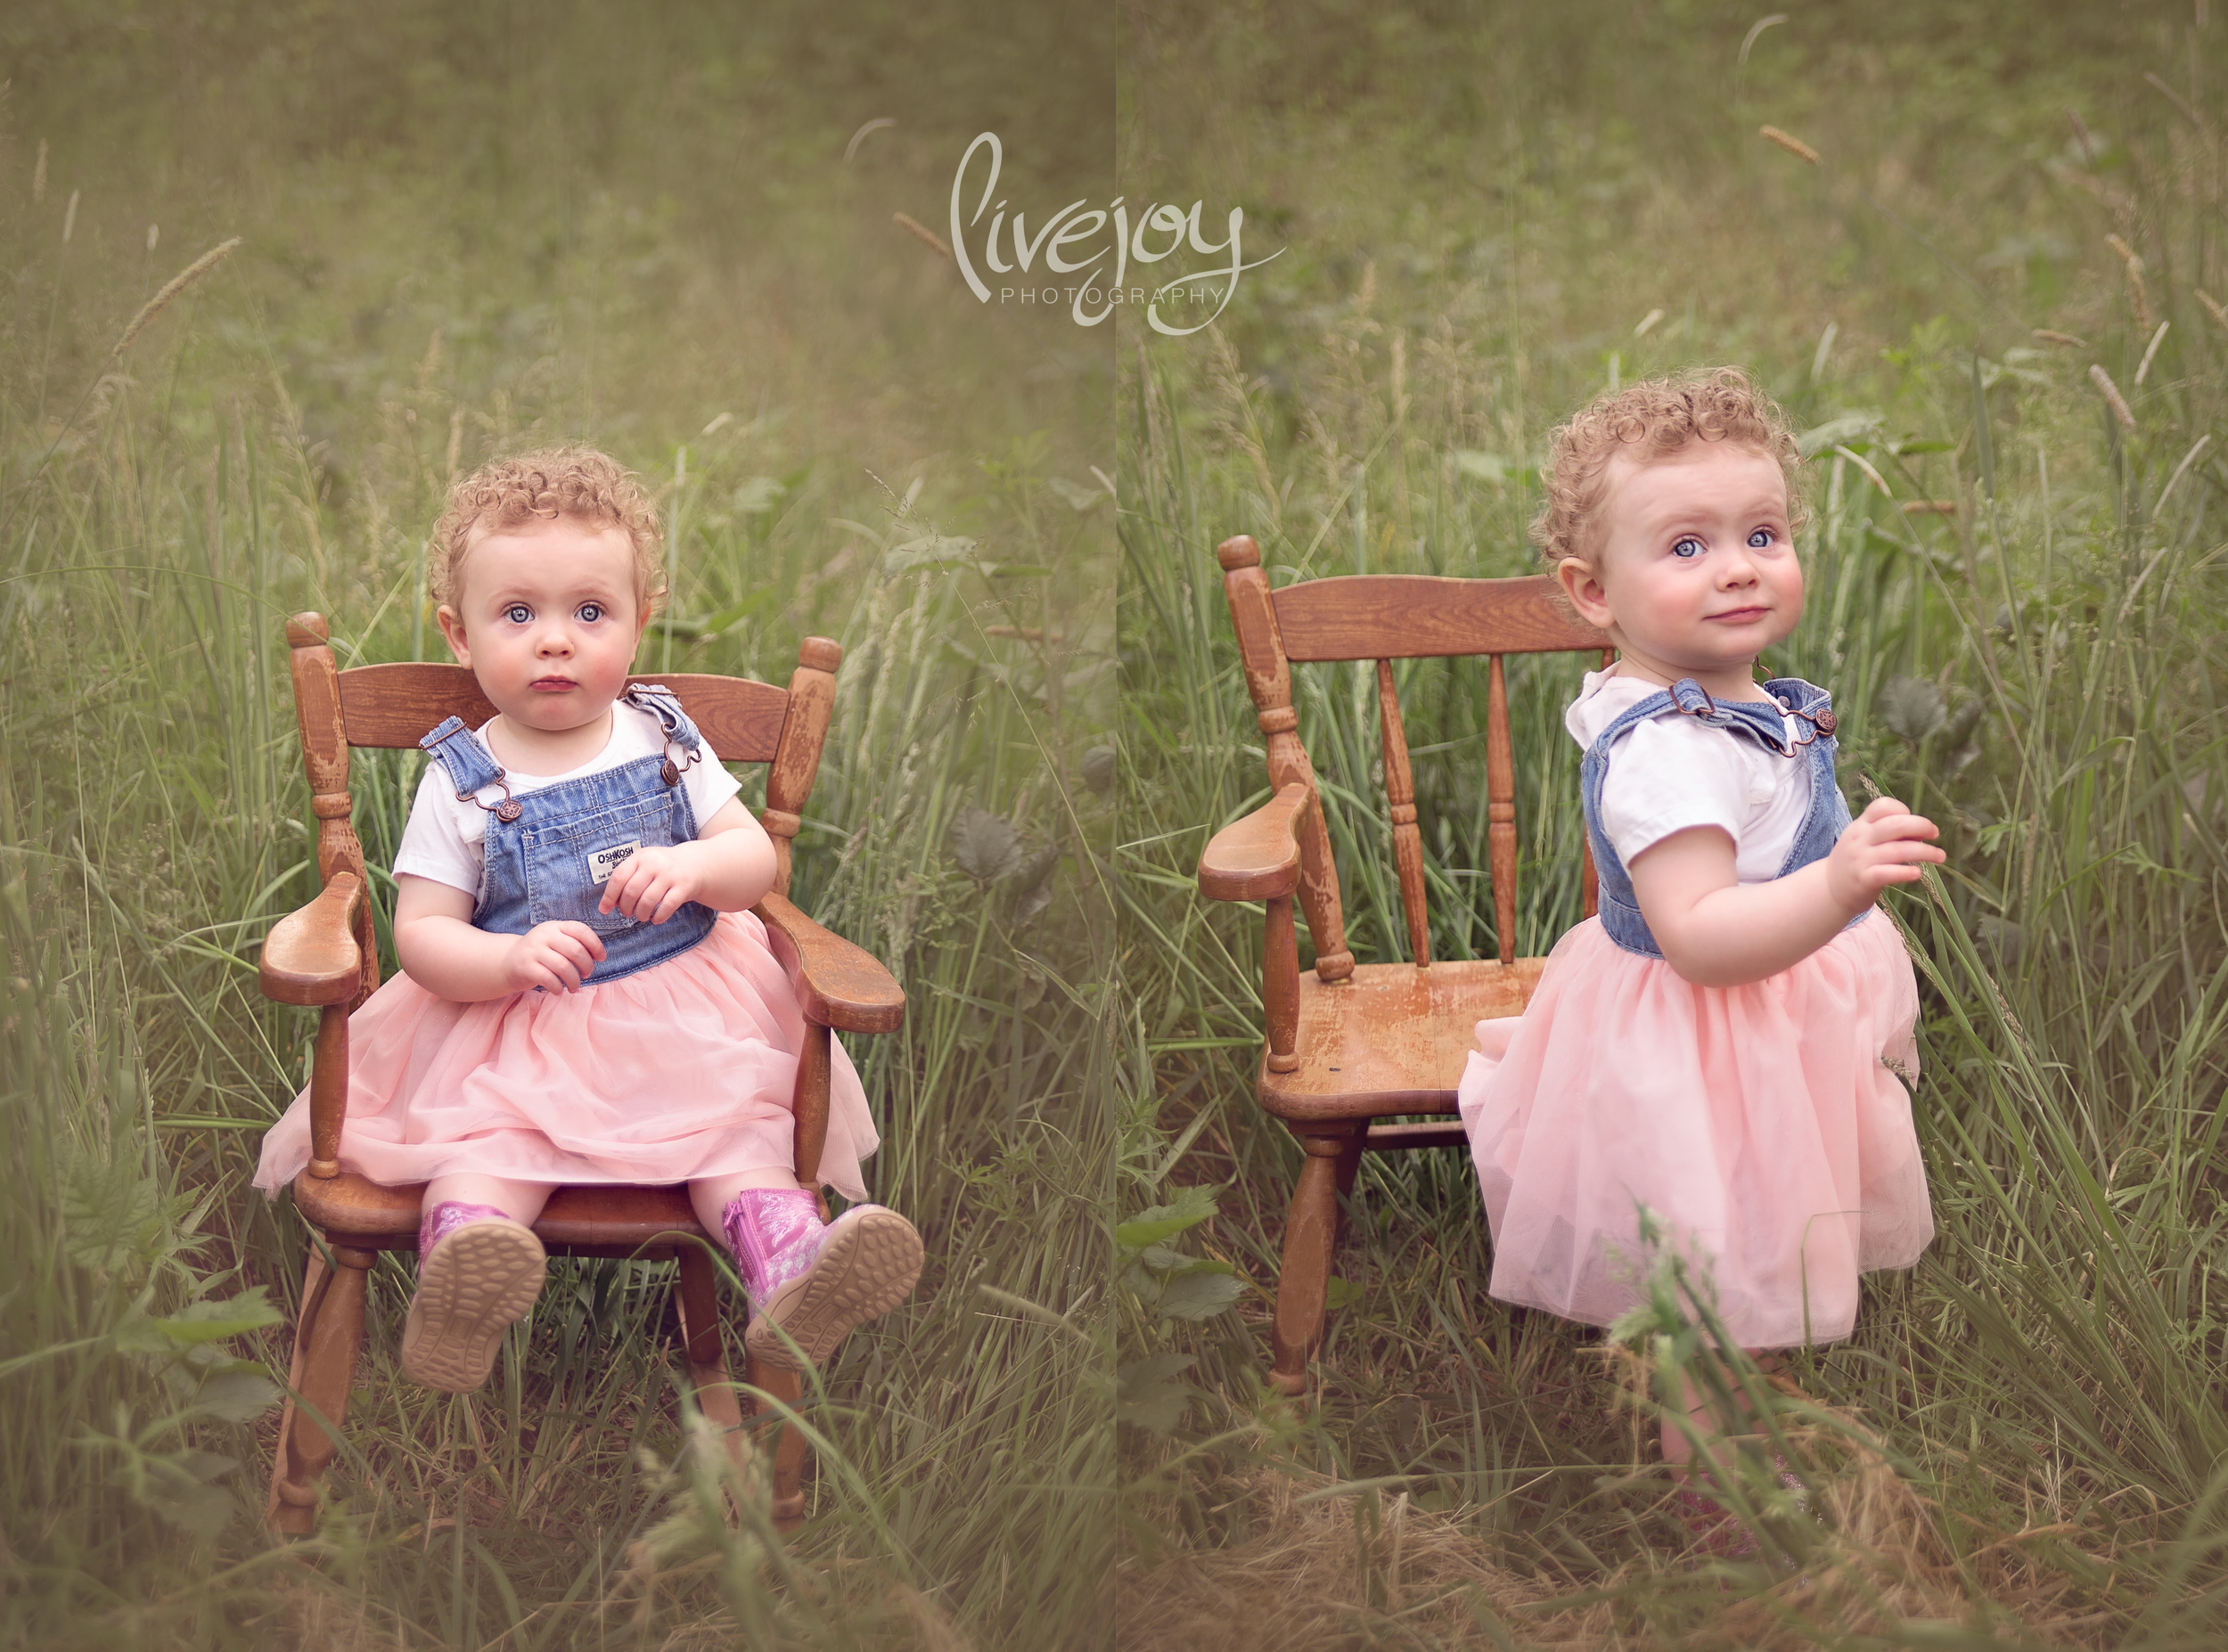 1 Year Baby Photos | Oregon | LiveJoy Photography